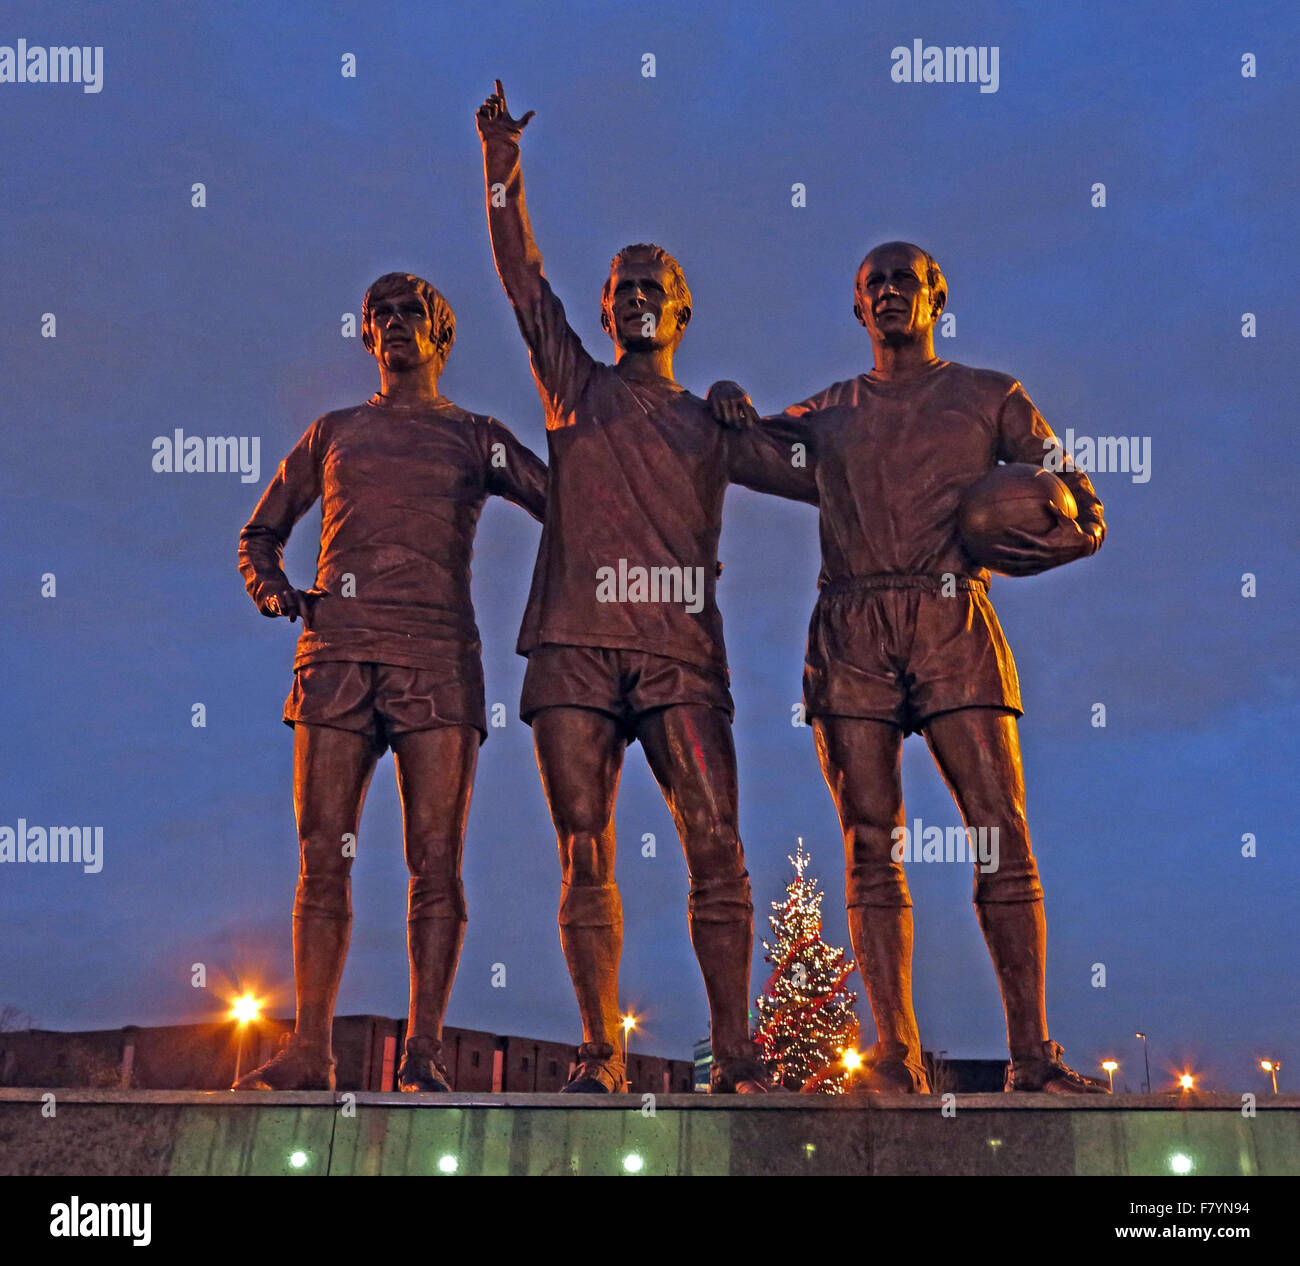 Charlton,dusk,night,at,nightshot,December,Xmas,Christmas,Holy Trinity statue,Manchester United trio,Manchester United,GoTonySmith,ManchesterUnited,MUFC,Mancester,MU,old,Trafford,theatre,of,dreams,Lancs,Lancashire,RedDevils,Red,Devils,Football,Club,FC,allseater,all-seater,association,away,balls,betting,britain,british,champions,changing,coaches,competition,culture,cups,division,documentary,dressing,england,english,fans,fixtures,game,goals,ground,heritage,history,home,homesoffootball,hooliganism,justice,kick,kick-off,league,managers,midweek,pitch,players,police,premier,promotion,referees,regulations,relegation,results,room,roots,rules,saturday,saturdays,scorers,season,seated,seater,seating,shinpads,shirt,shirts,sizes,sky,skysports,soccer,social,socks,sponsors,sport,stadia,stadium,standing,sundays,sunday,system,tables,team,terraces,tradition,trainers,Adidas,Puma,Buy Pictures of,Buy Images Of,Old Trafford,Theatre of Dreams,Theater of dreams,Red Devils